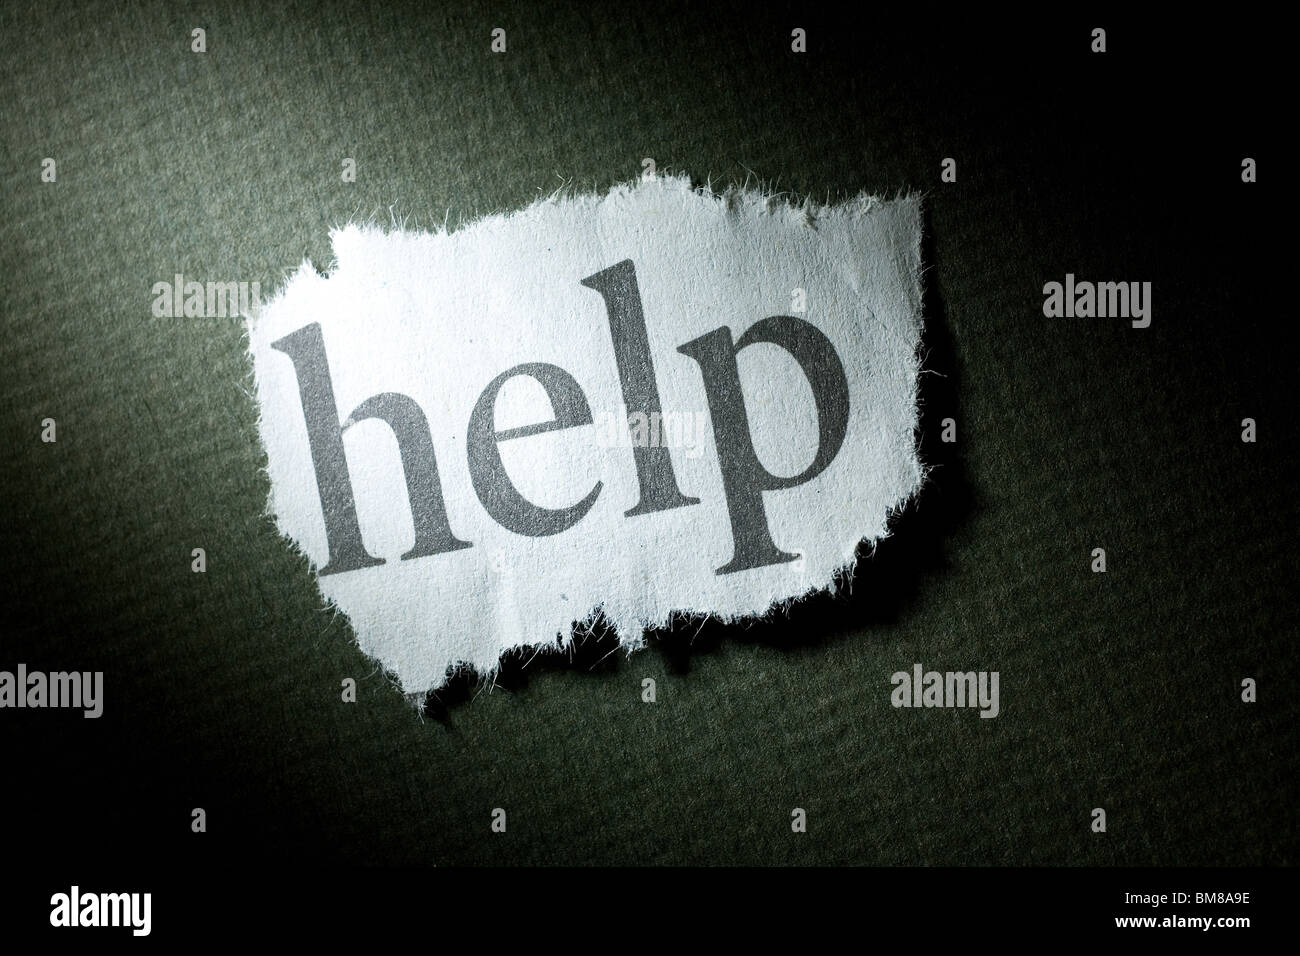 Headline Help, concept of Help - Stock Image